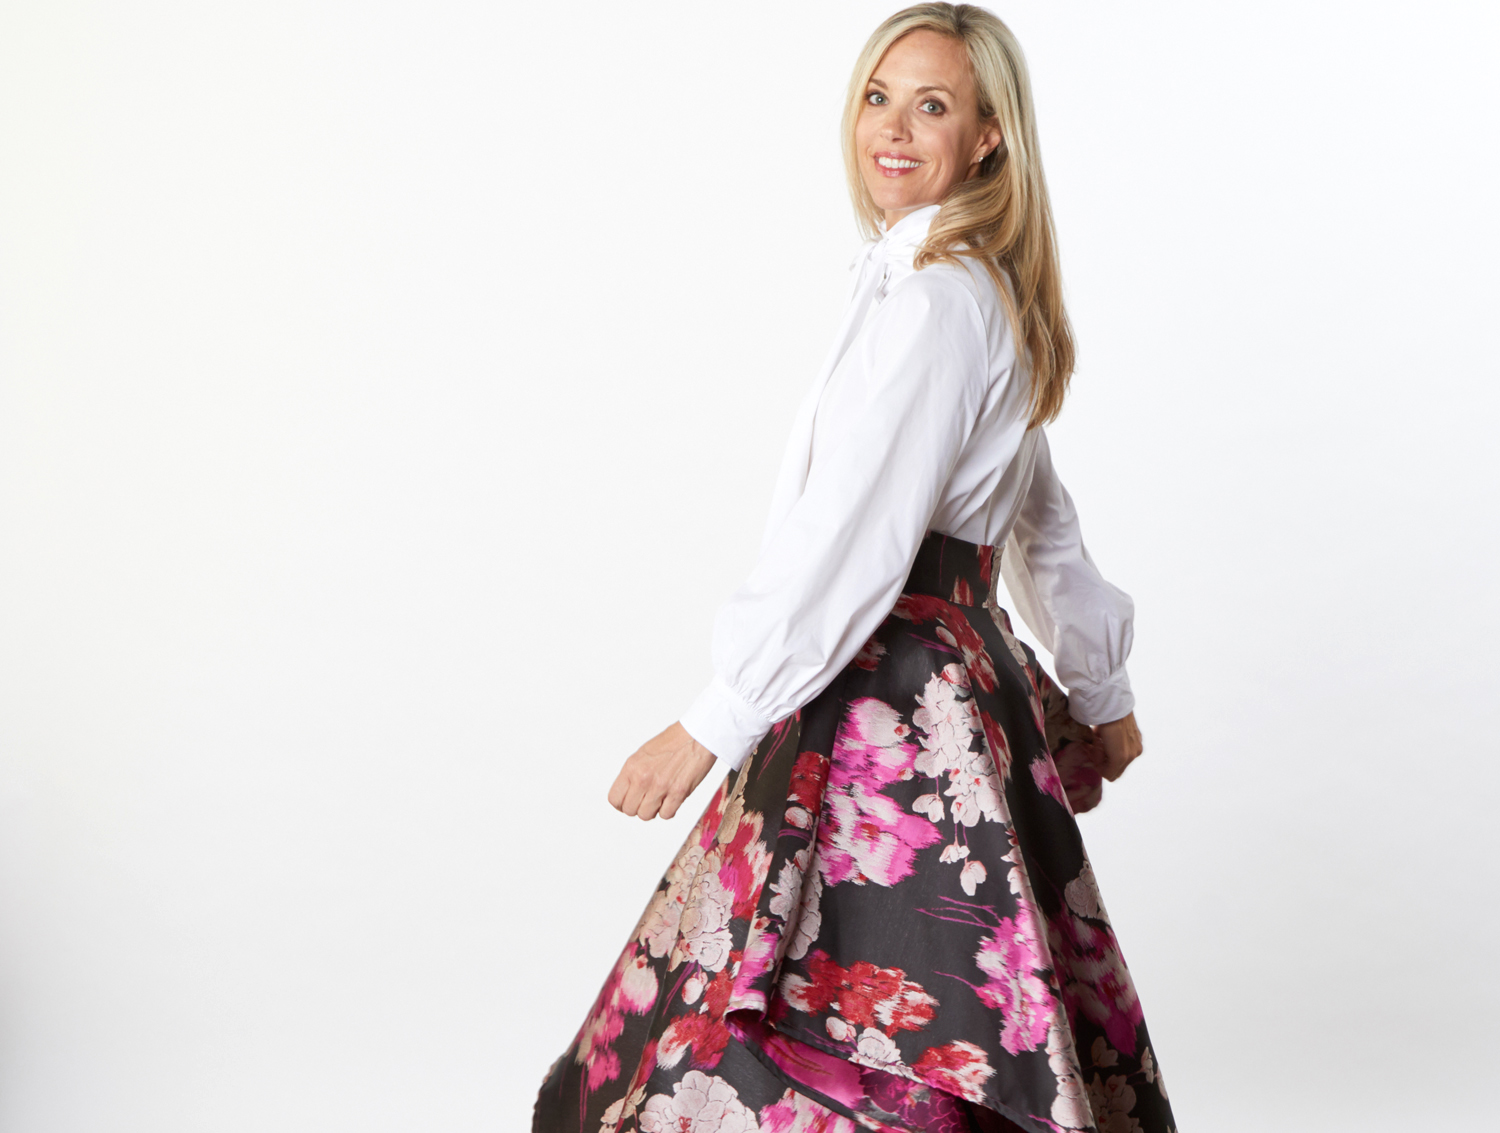 Ribbon Tie Blouse in Stretch Poplin, Grange Zip Skirt in Black/Pink Duchesse Jacquard